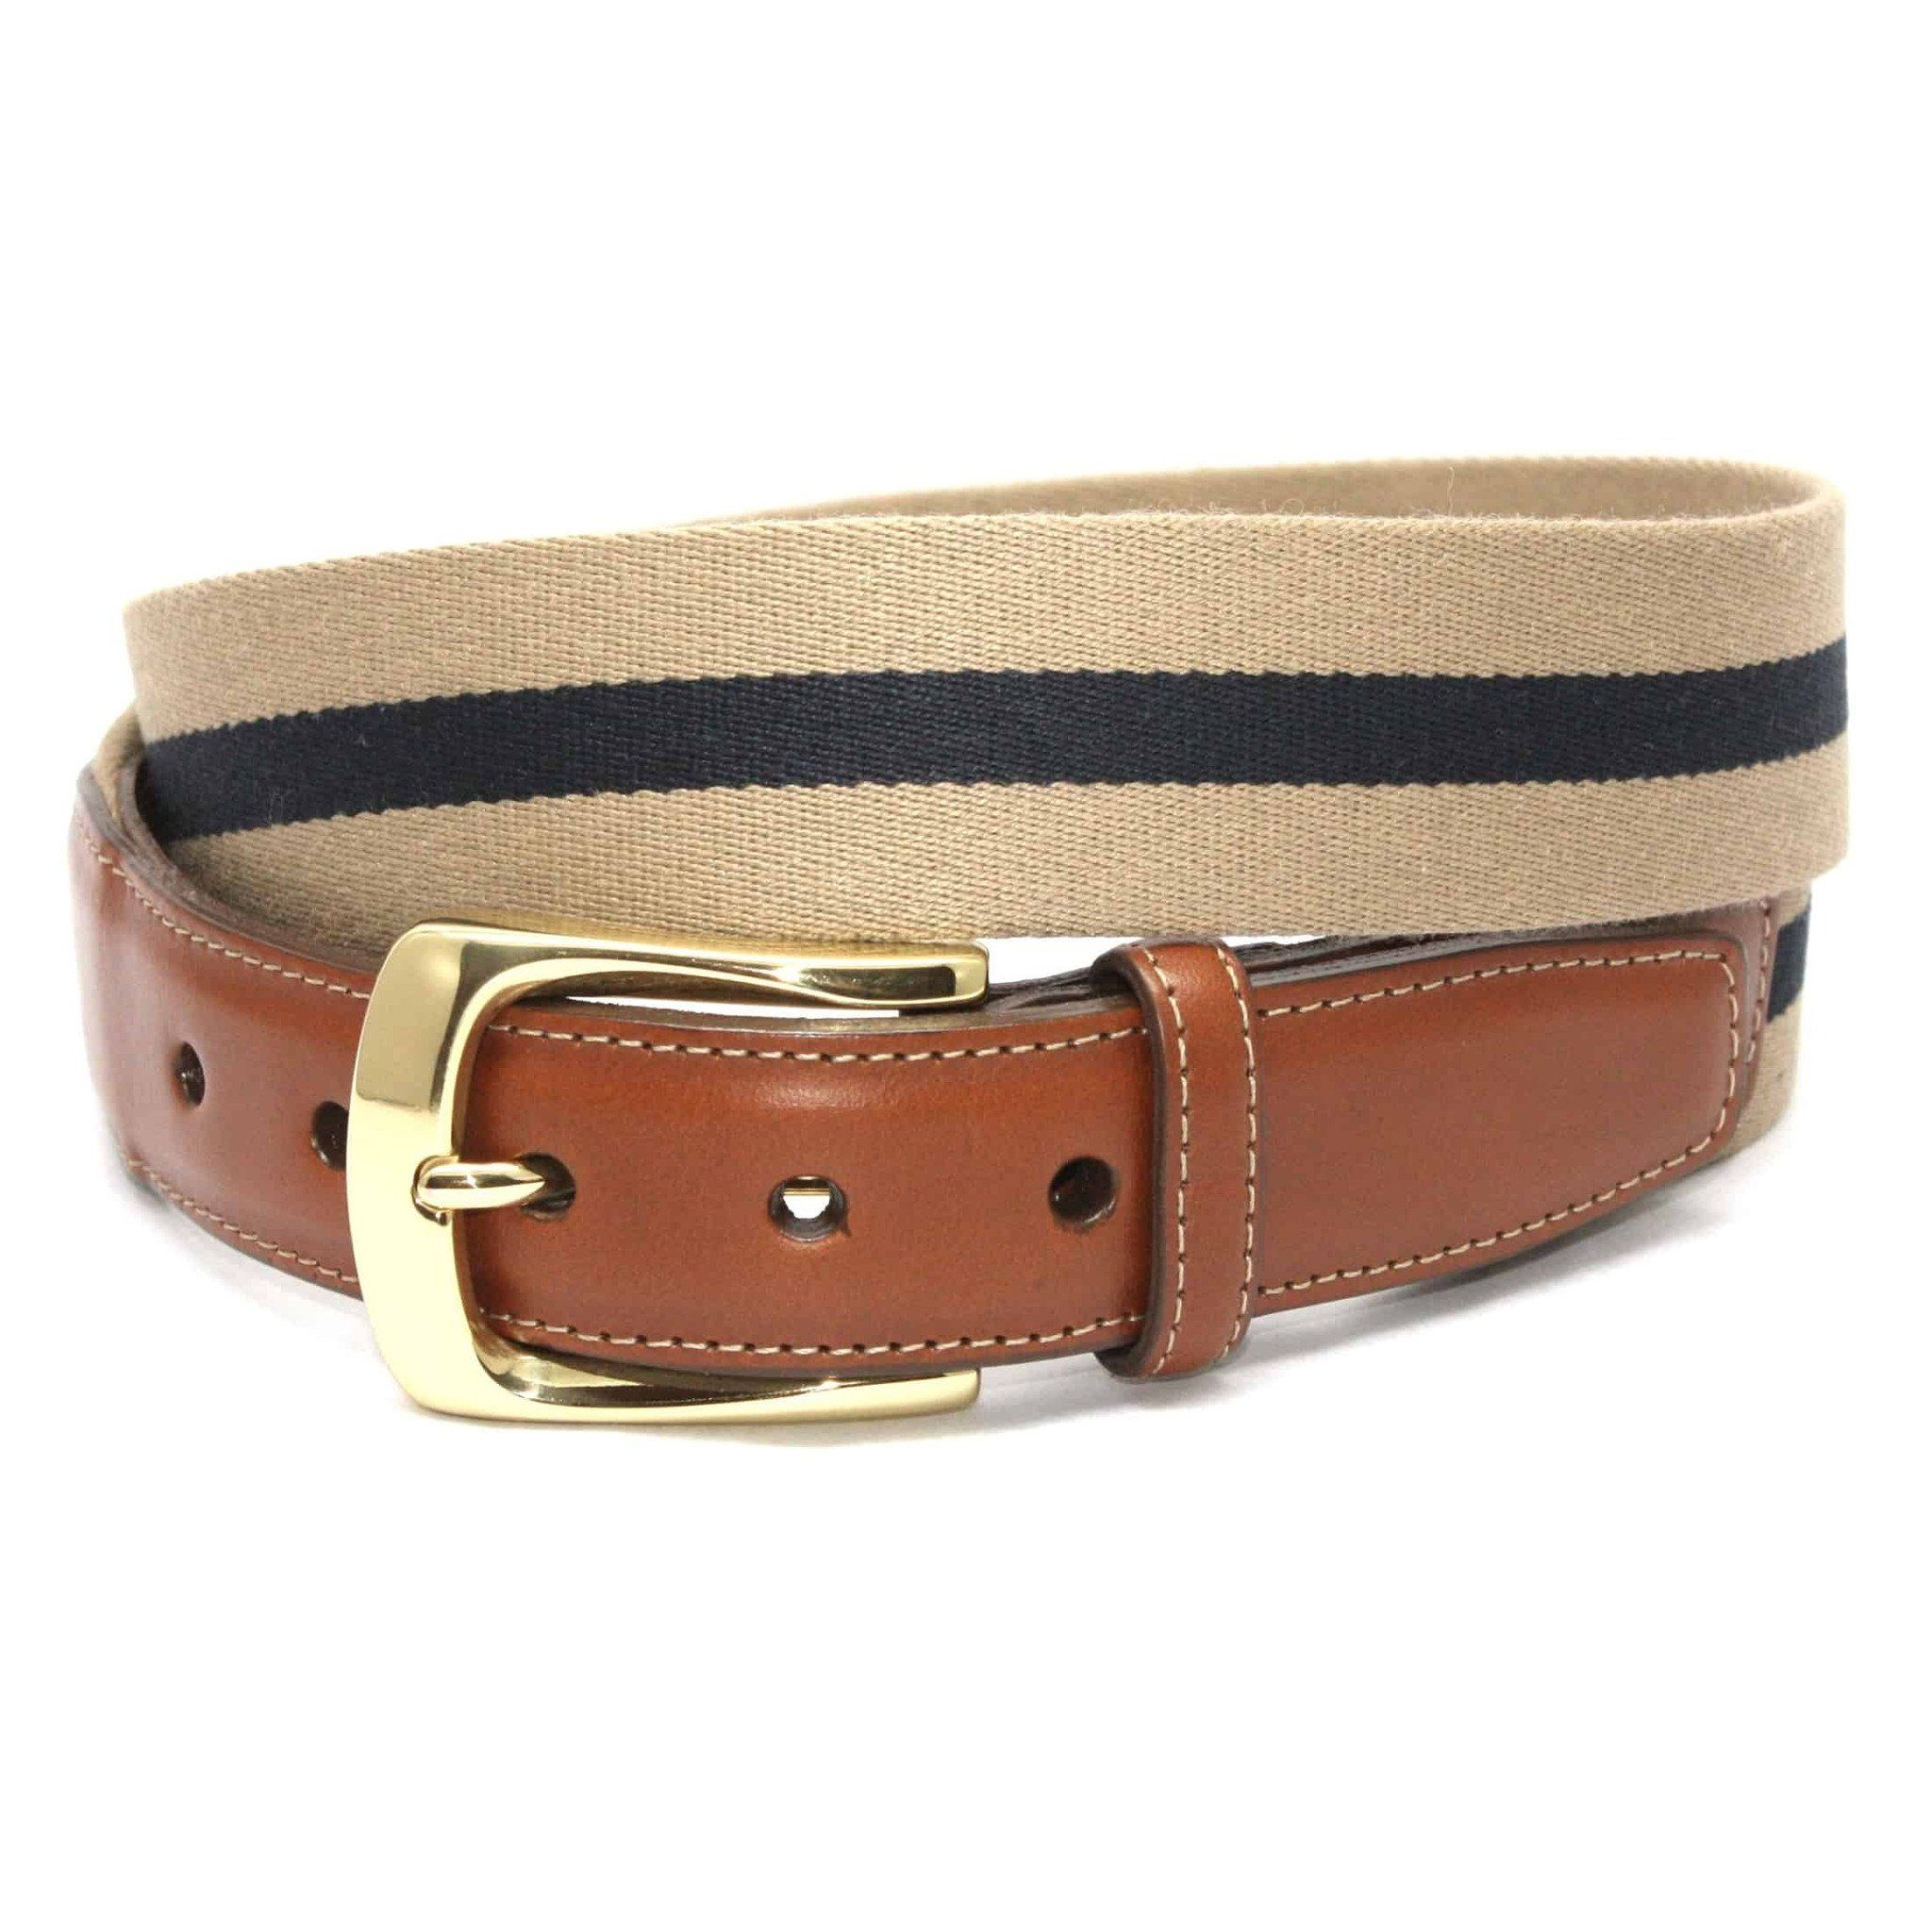 European Ribbed Striped Surcingle Belt - Camel/Navy,BELT,GentRow.com, | GentRow.com